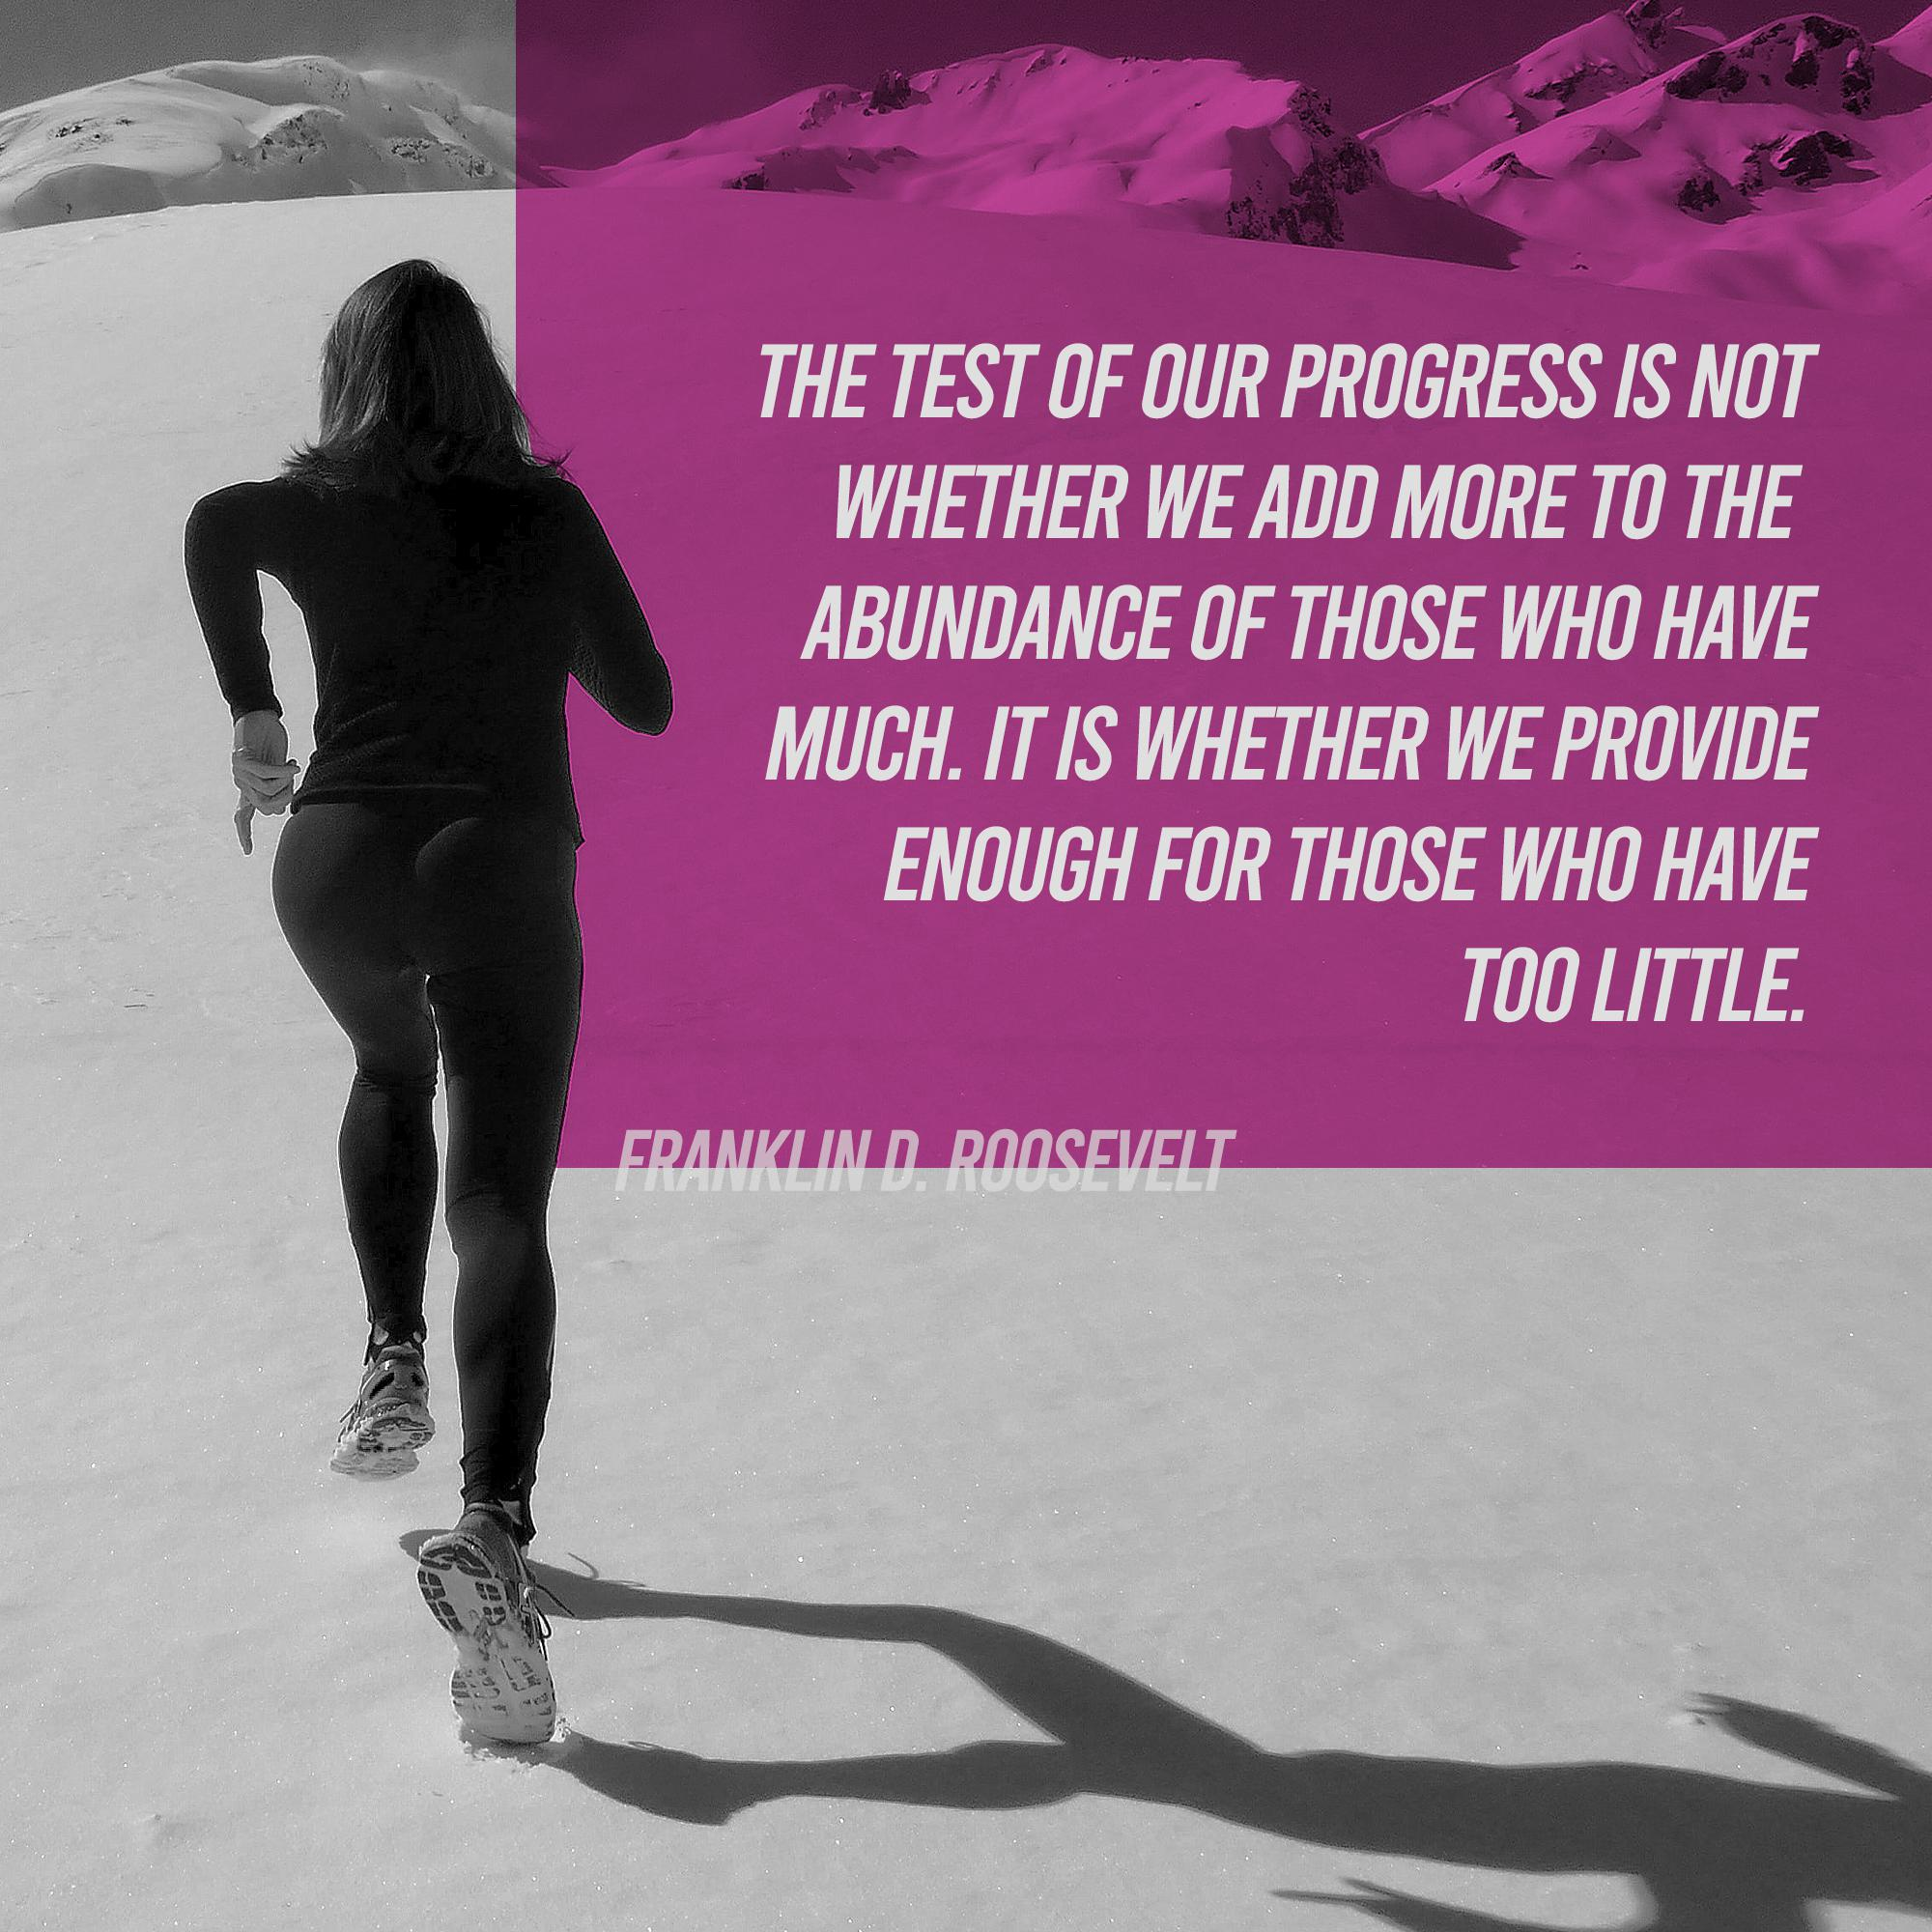 [Image] The Test Of Our Progress